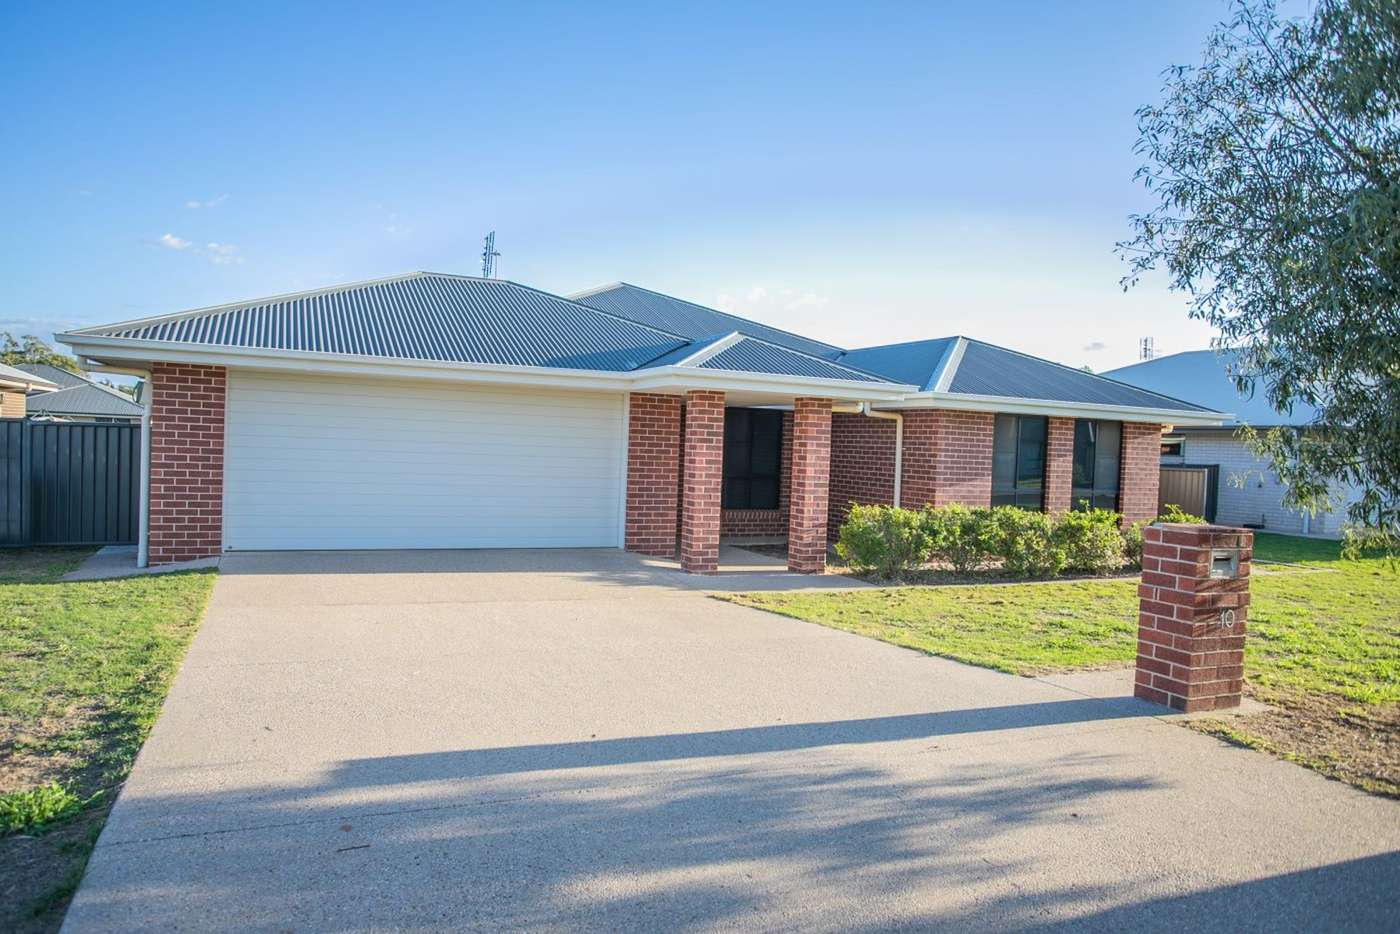 Main view of Homely house listing, 10 Gower Street, Chinchilla QLD 4413